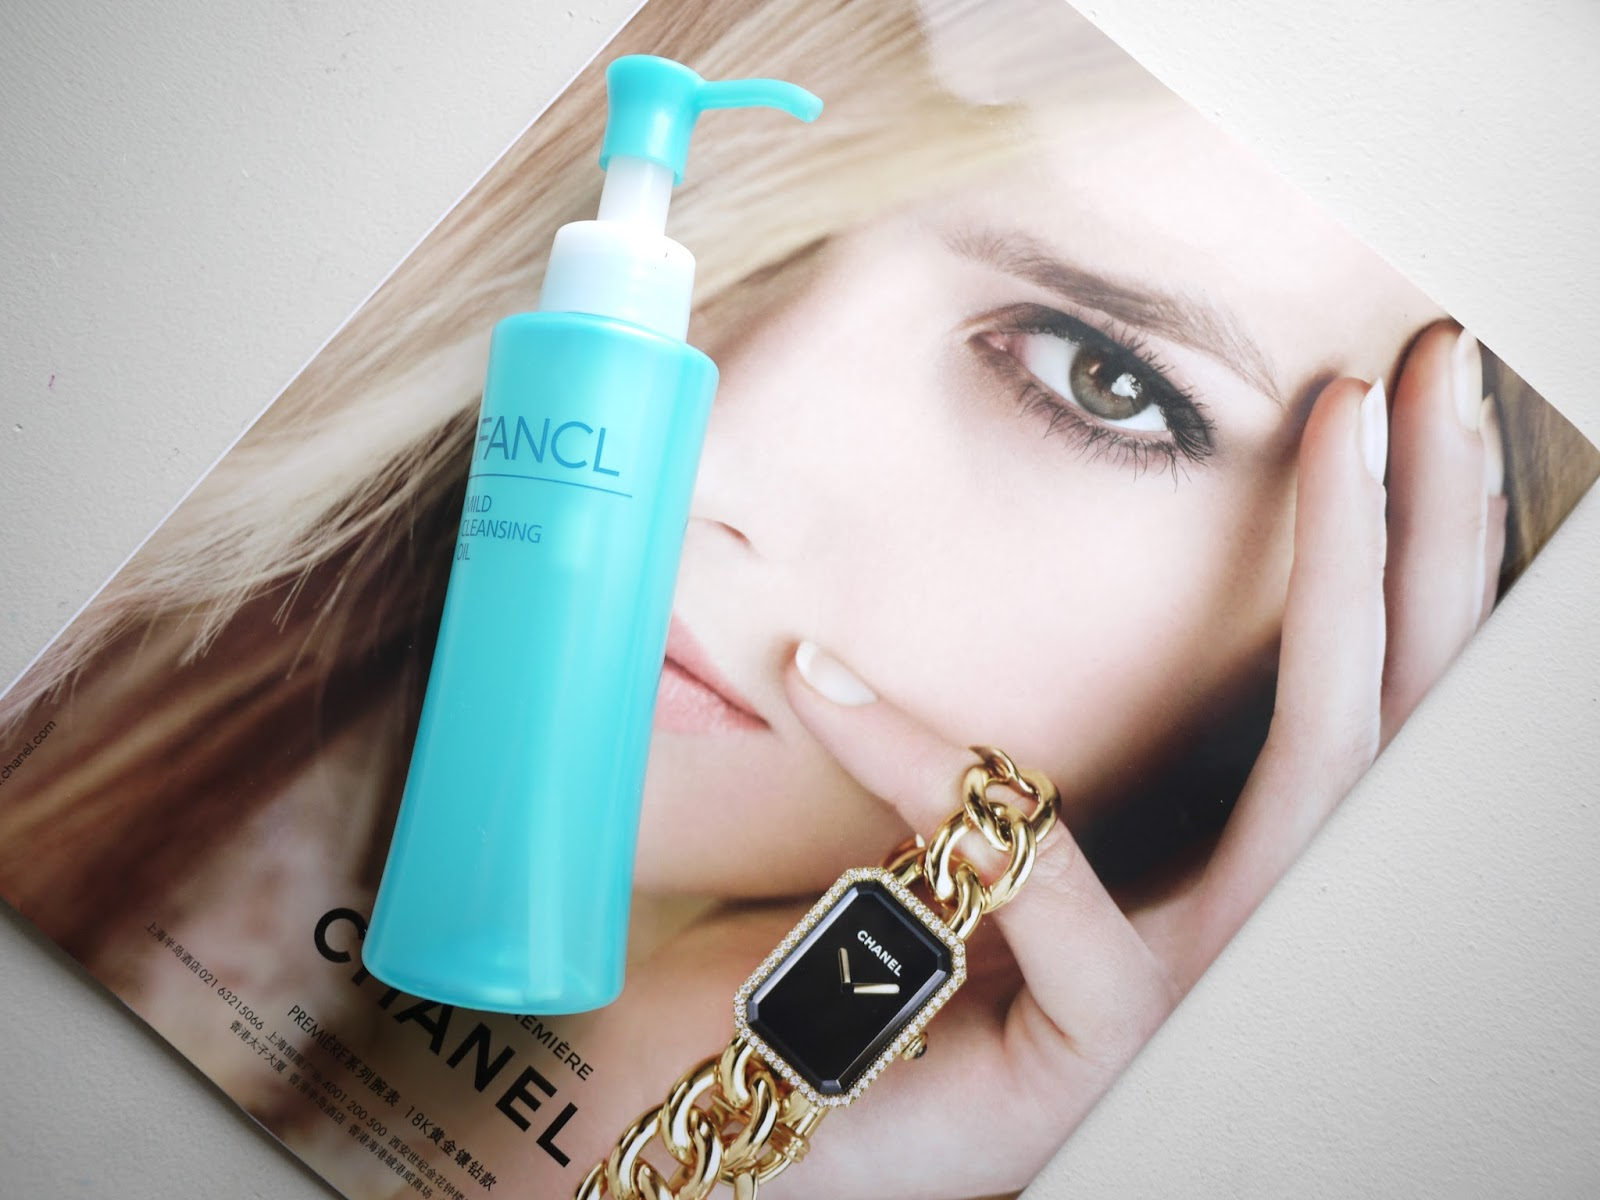 Fancl mild cleansing oil review